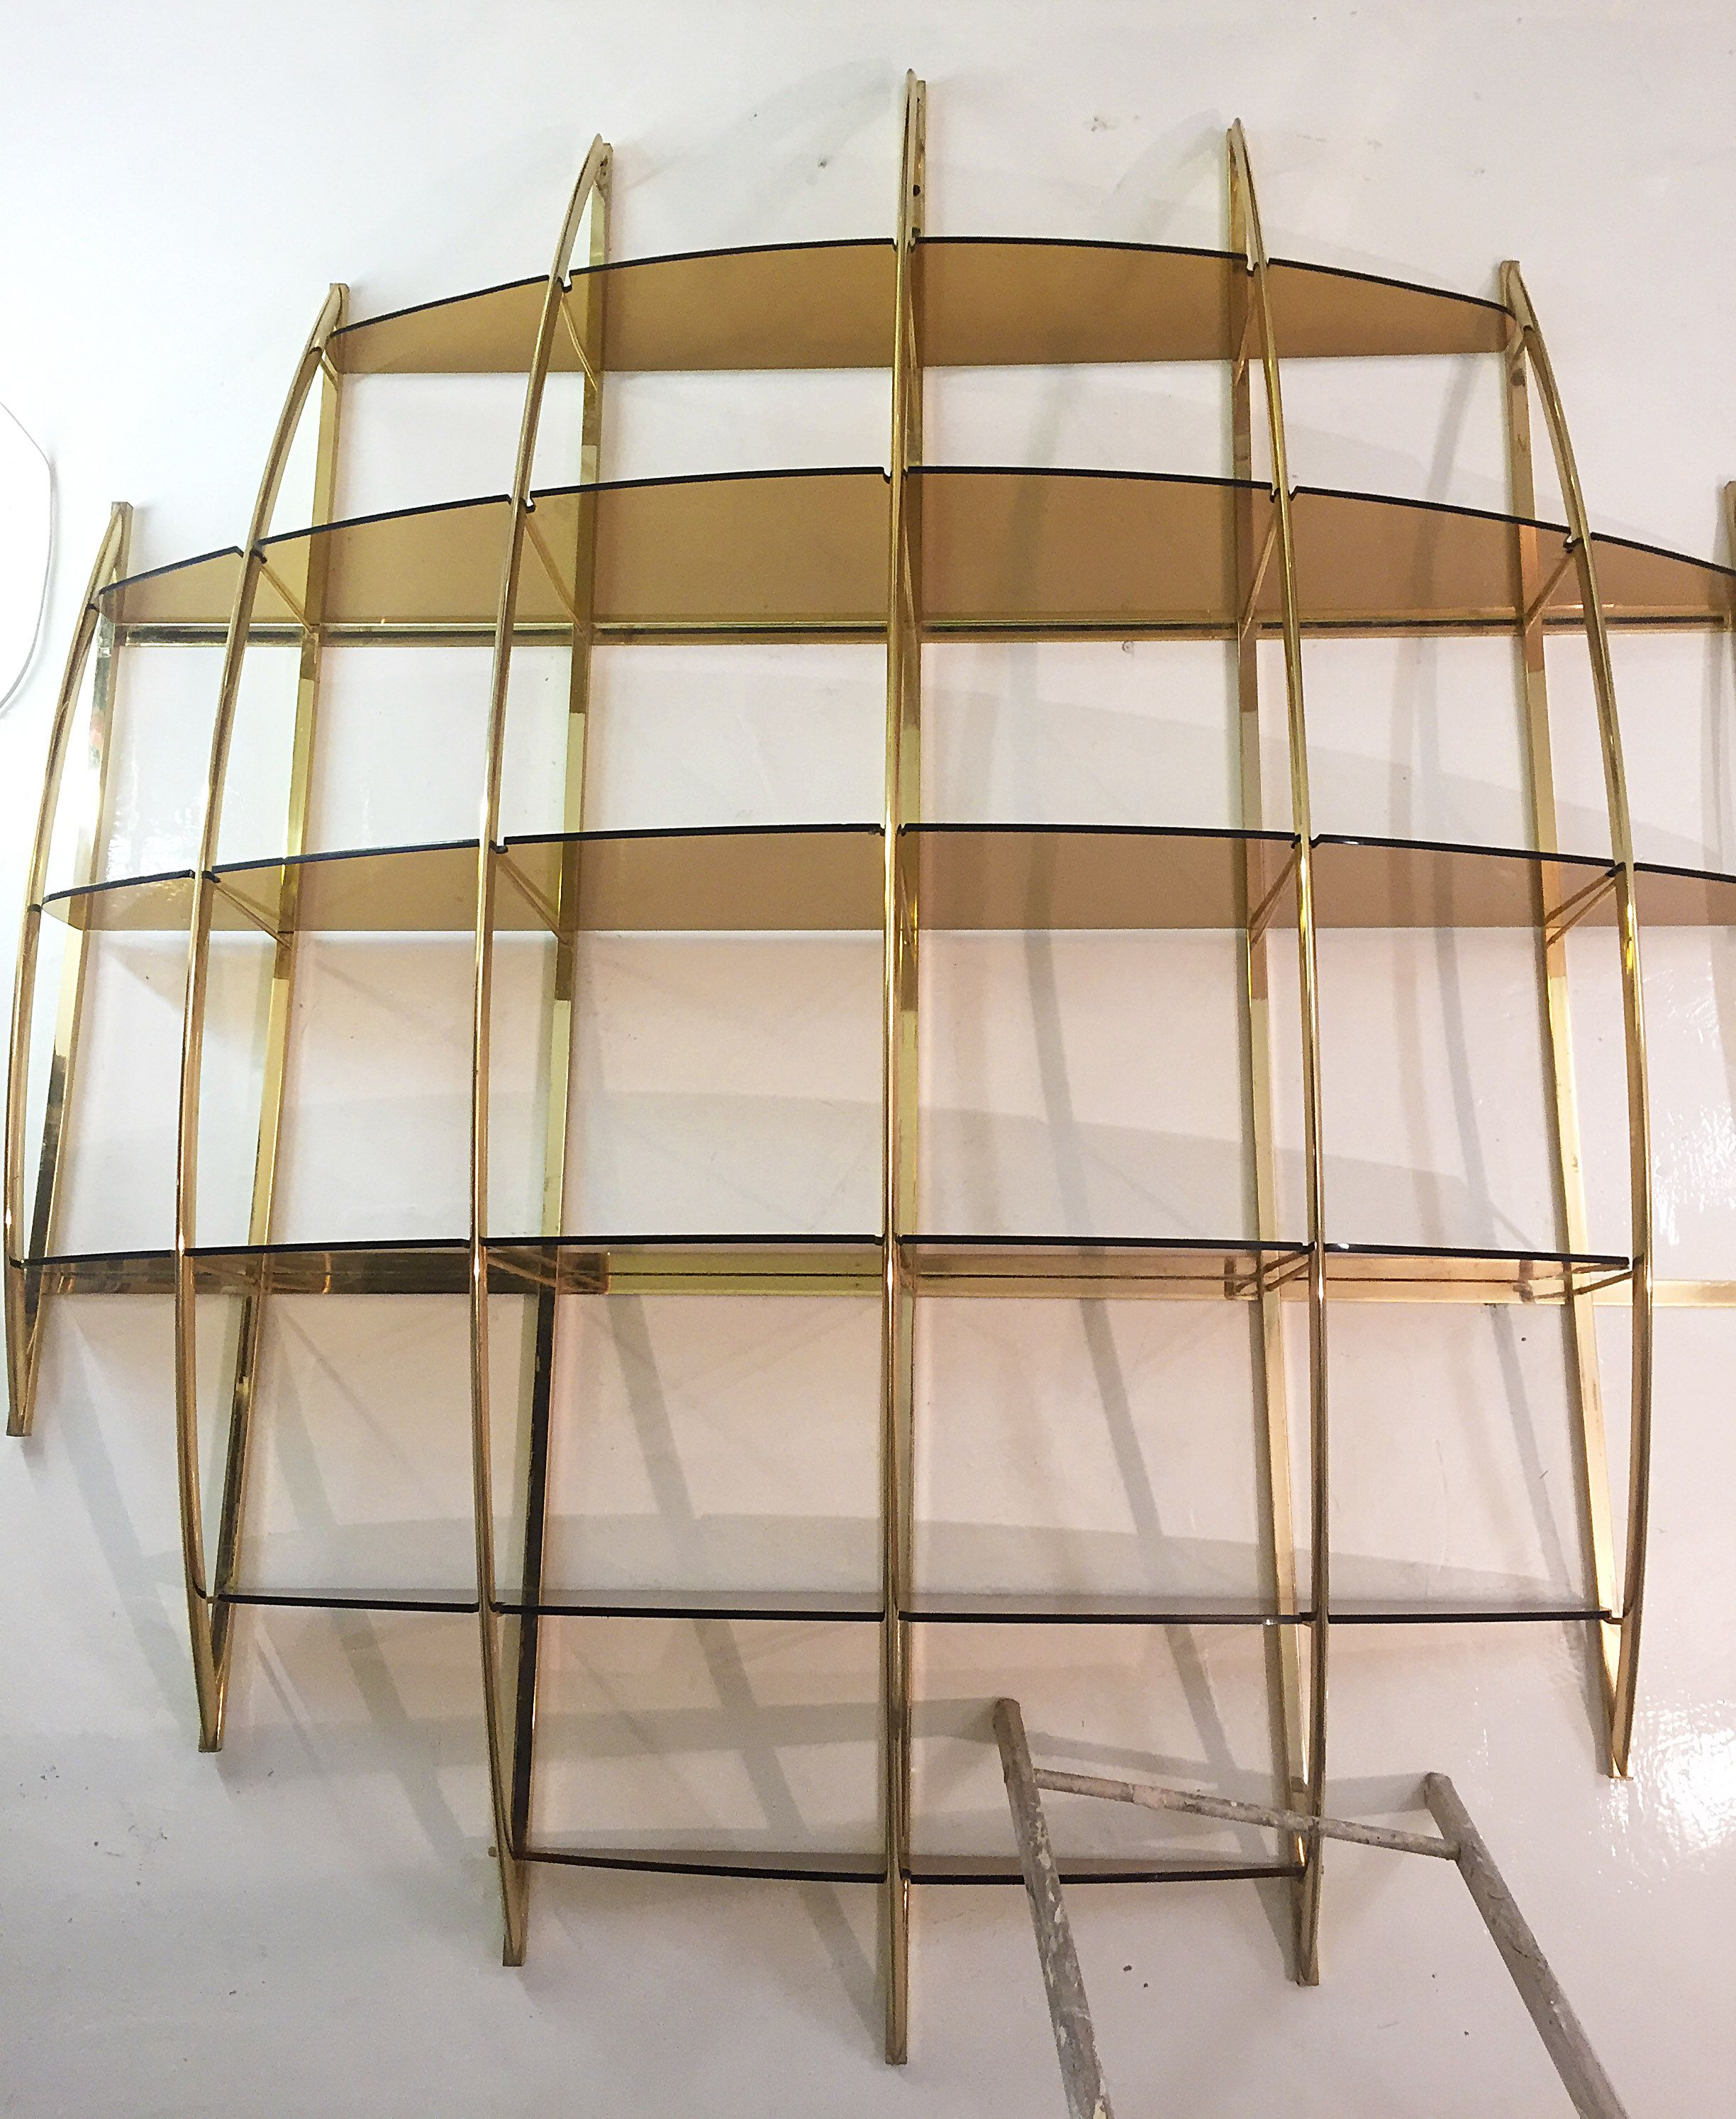 Vintage Wall Unit Shelves In Brass By Manfredo Massironi For Nikol  International 1970